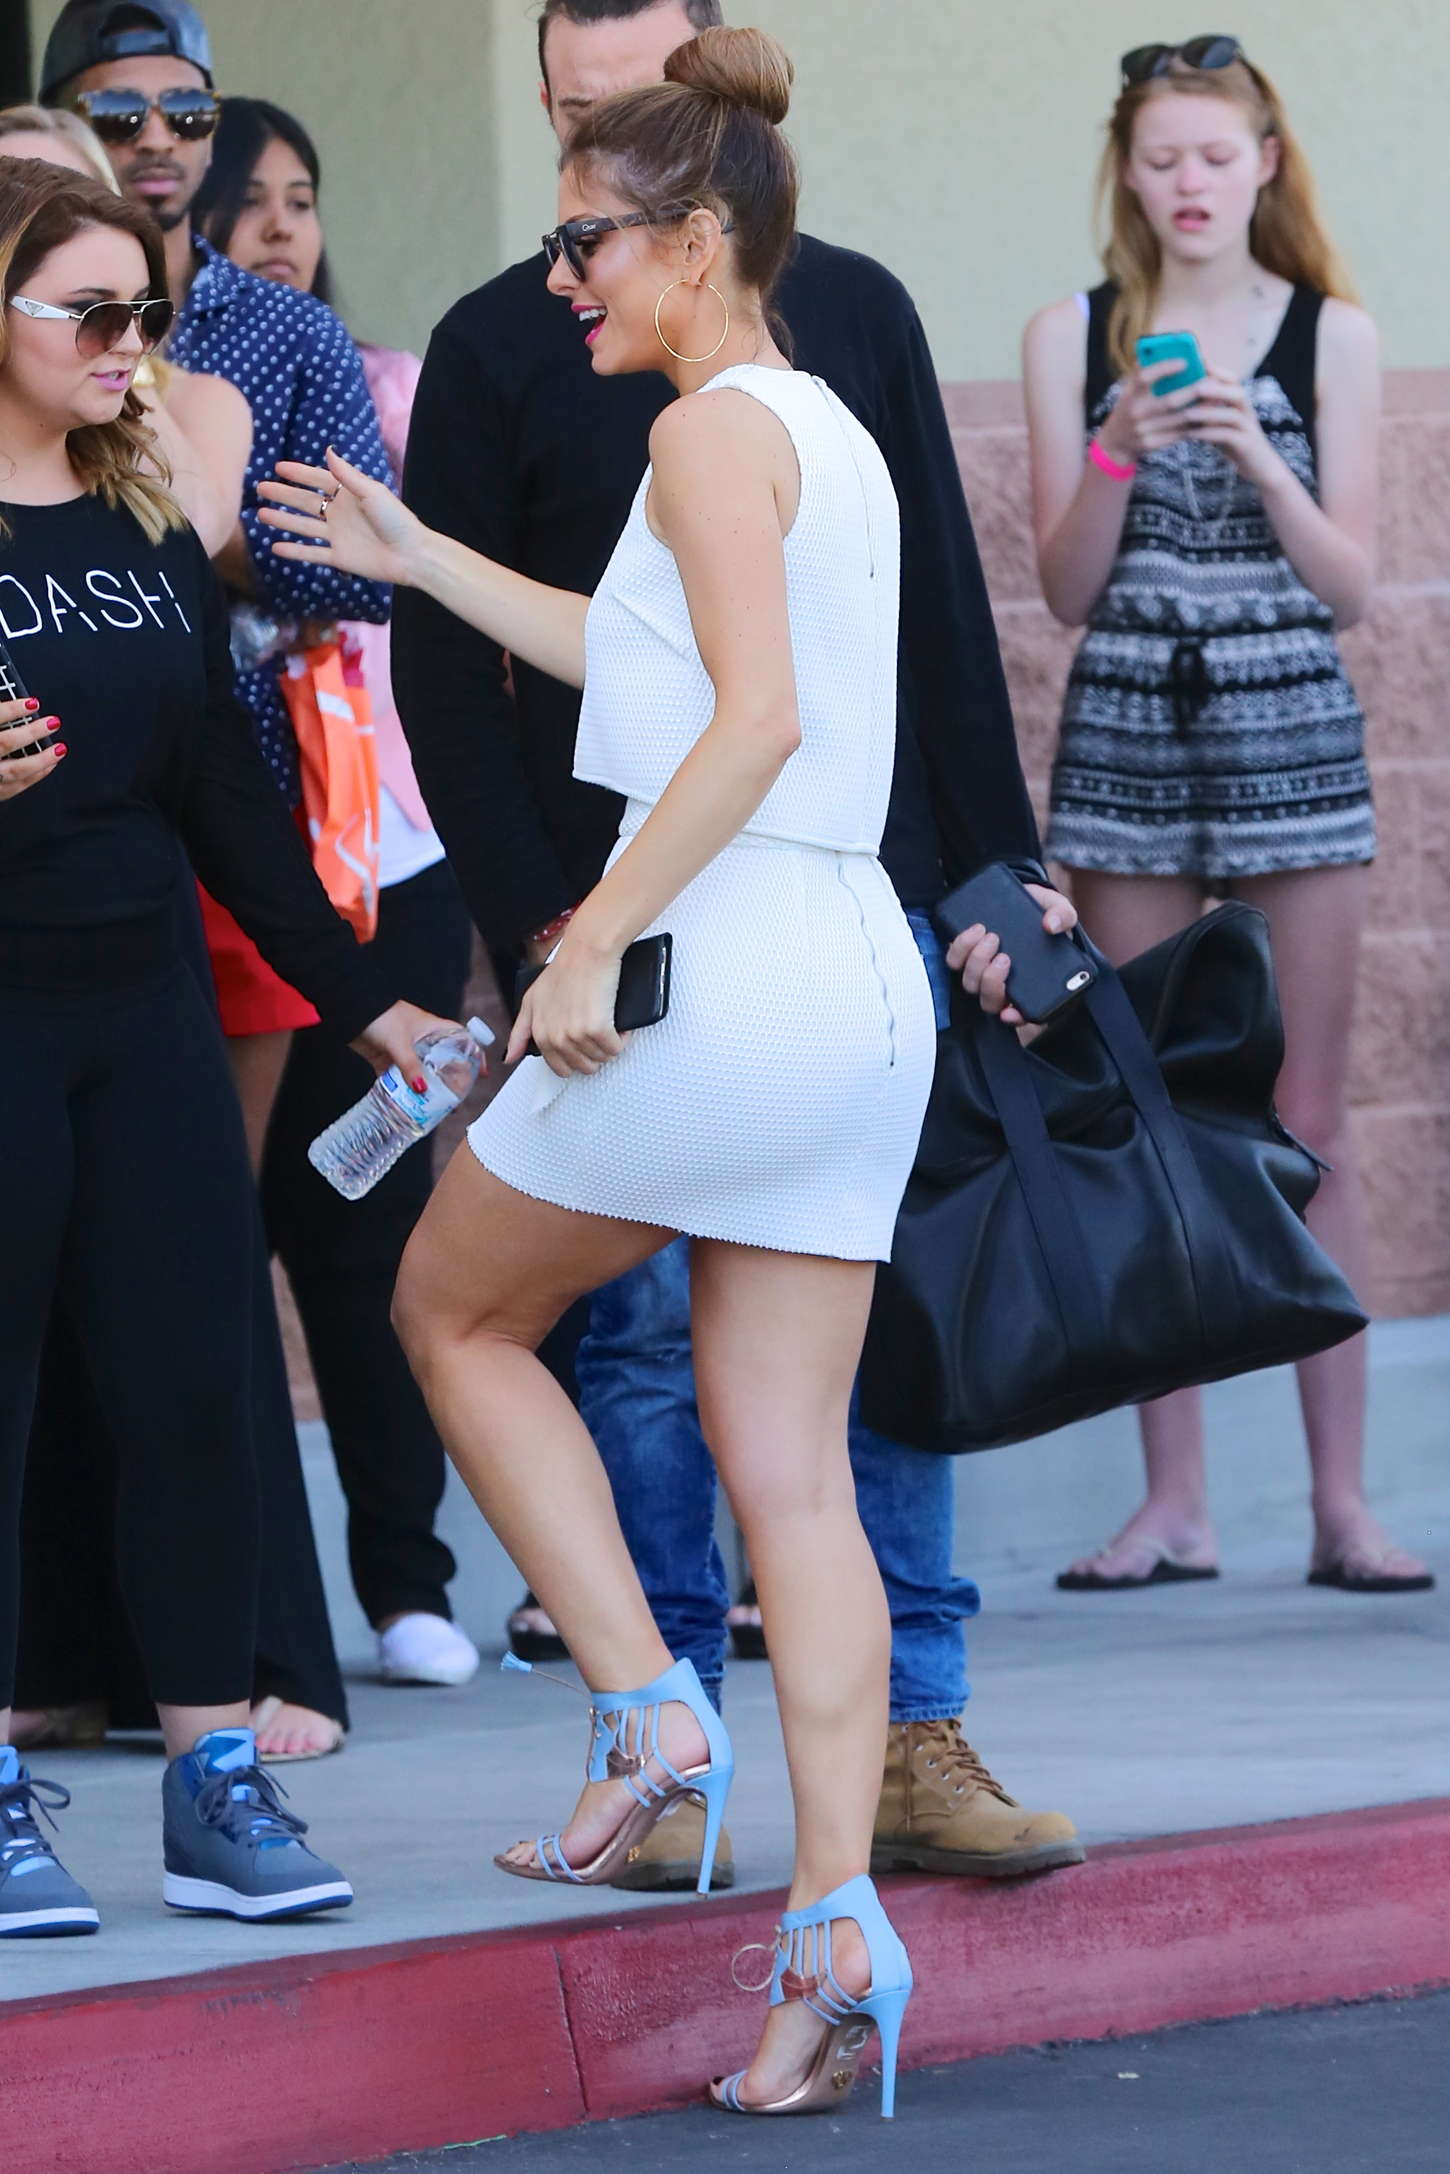 Maria Menounos in Tight Mini Dress - Leaving 'ULTA' in LA